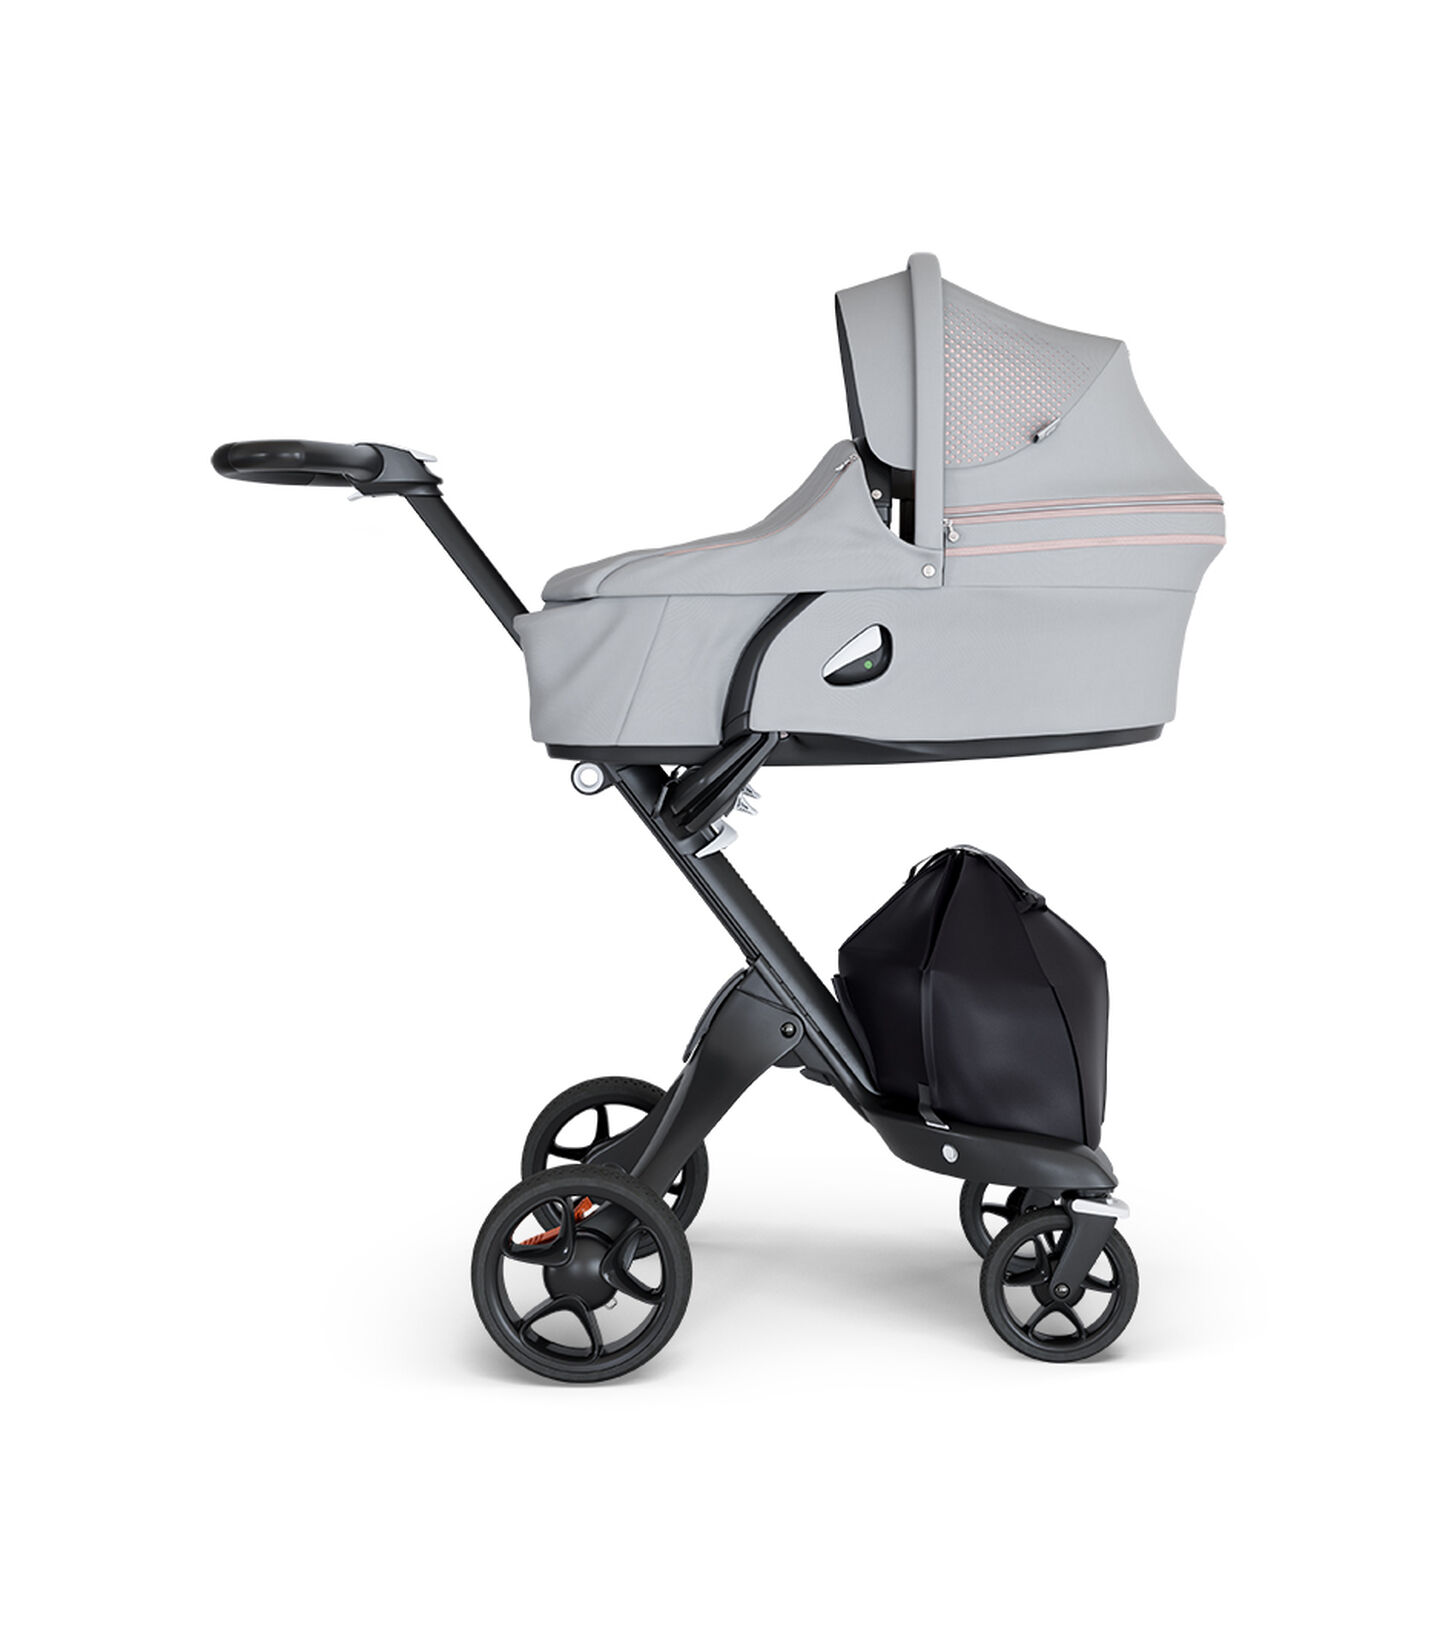 Stokke® Xplory® wtih Black Chassis and Leatherette Black handle. Stokke® Stroller Carry Cot Athleisure Pink.